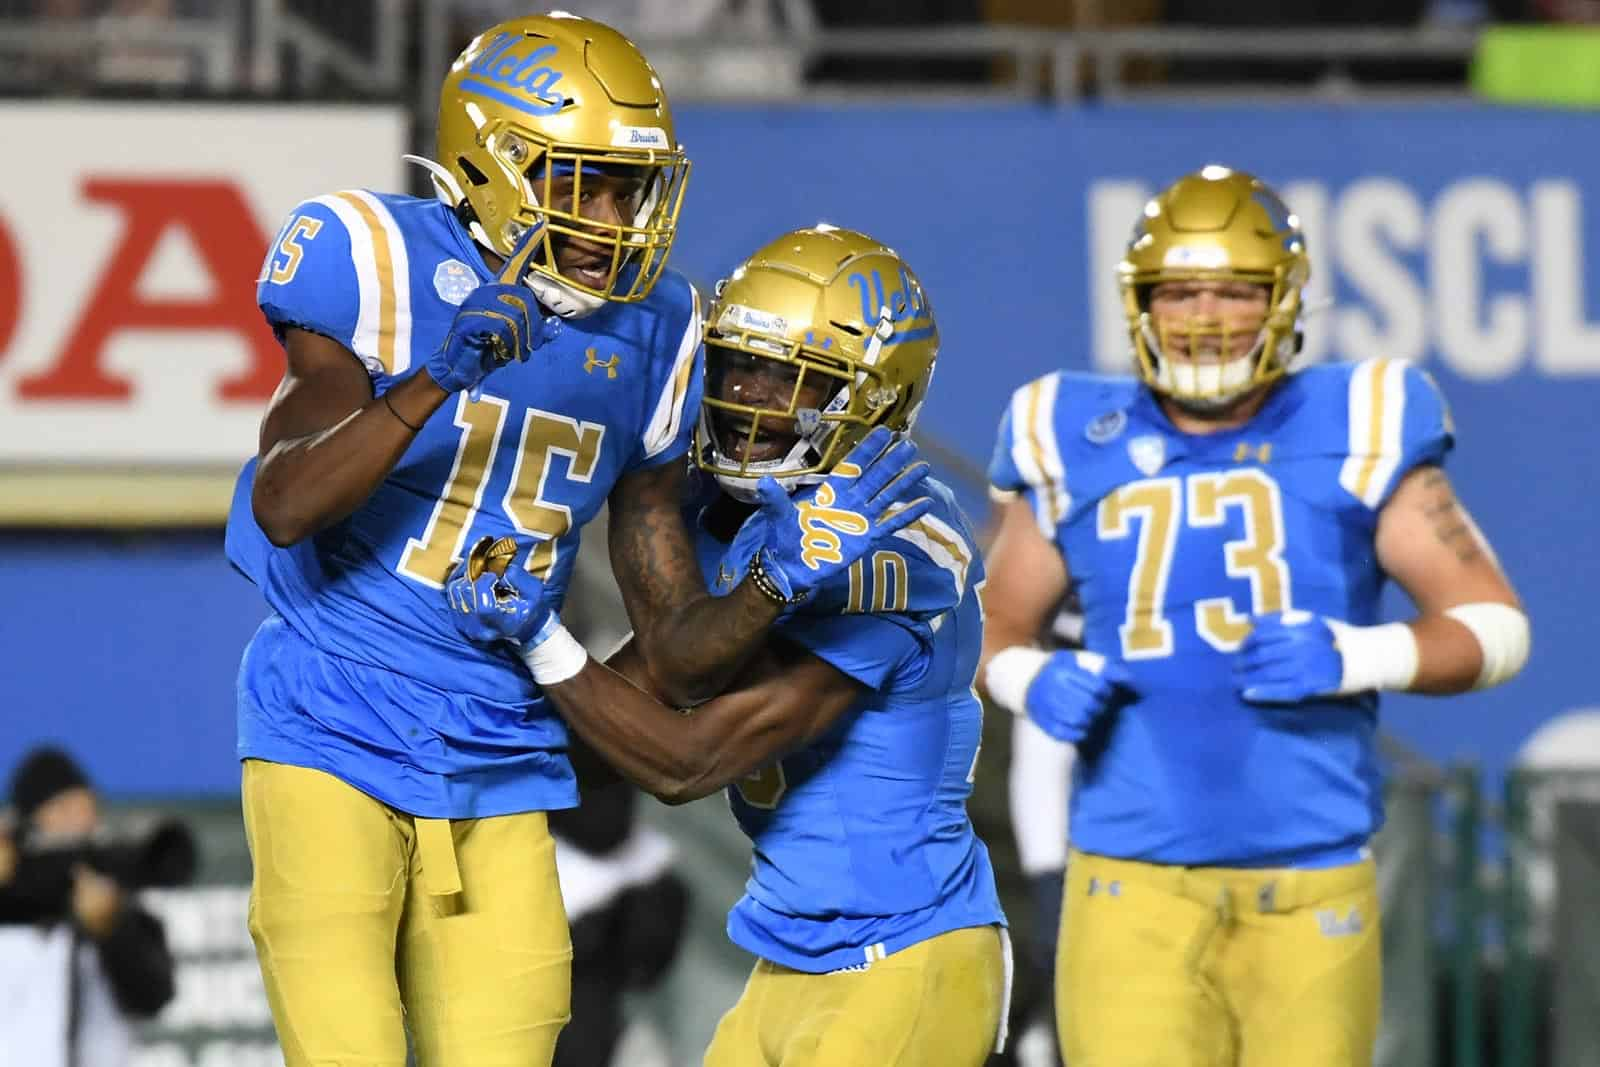 2020 UCLA Bruins football schedule